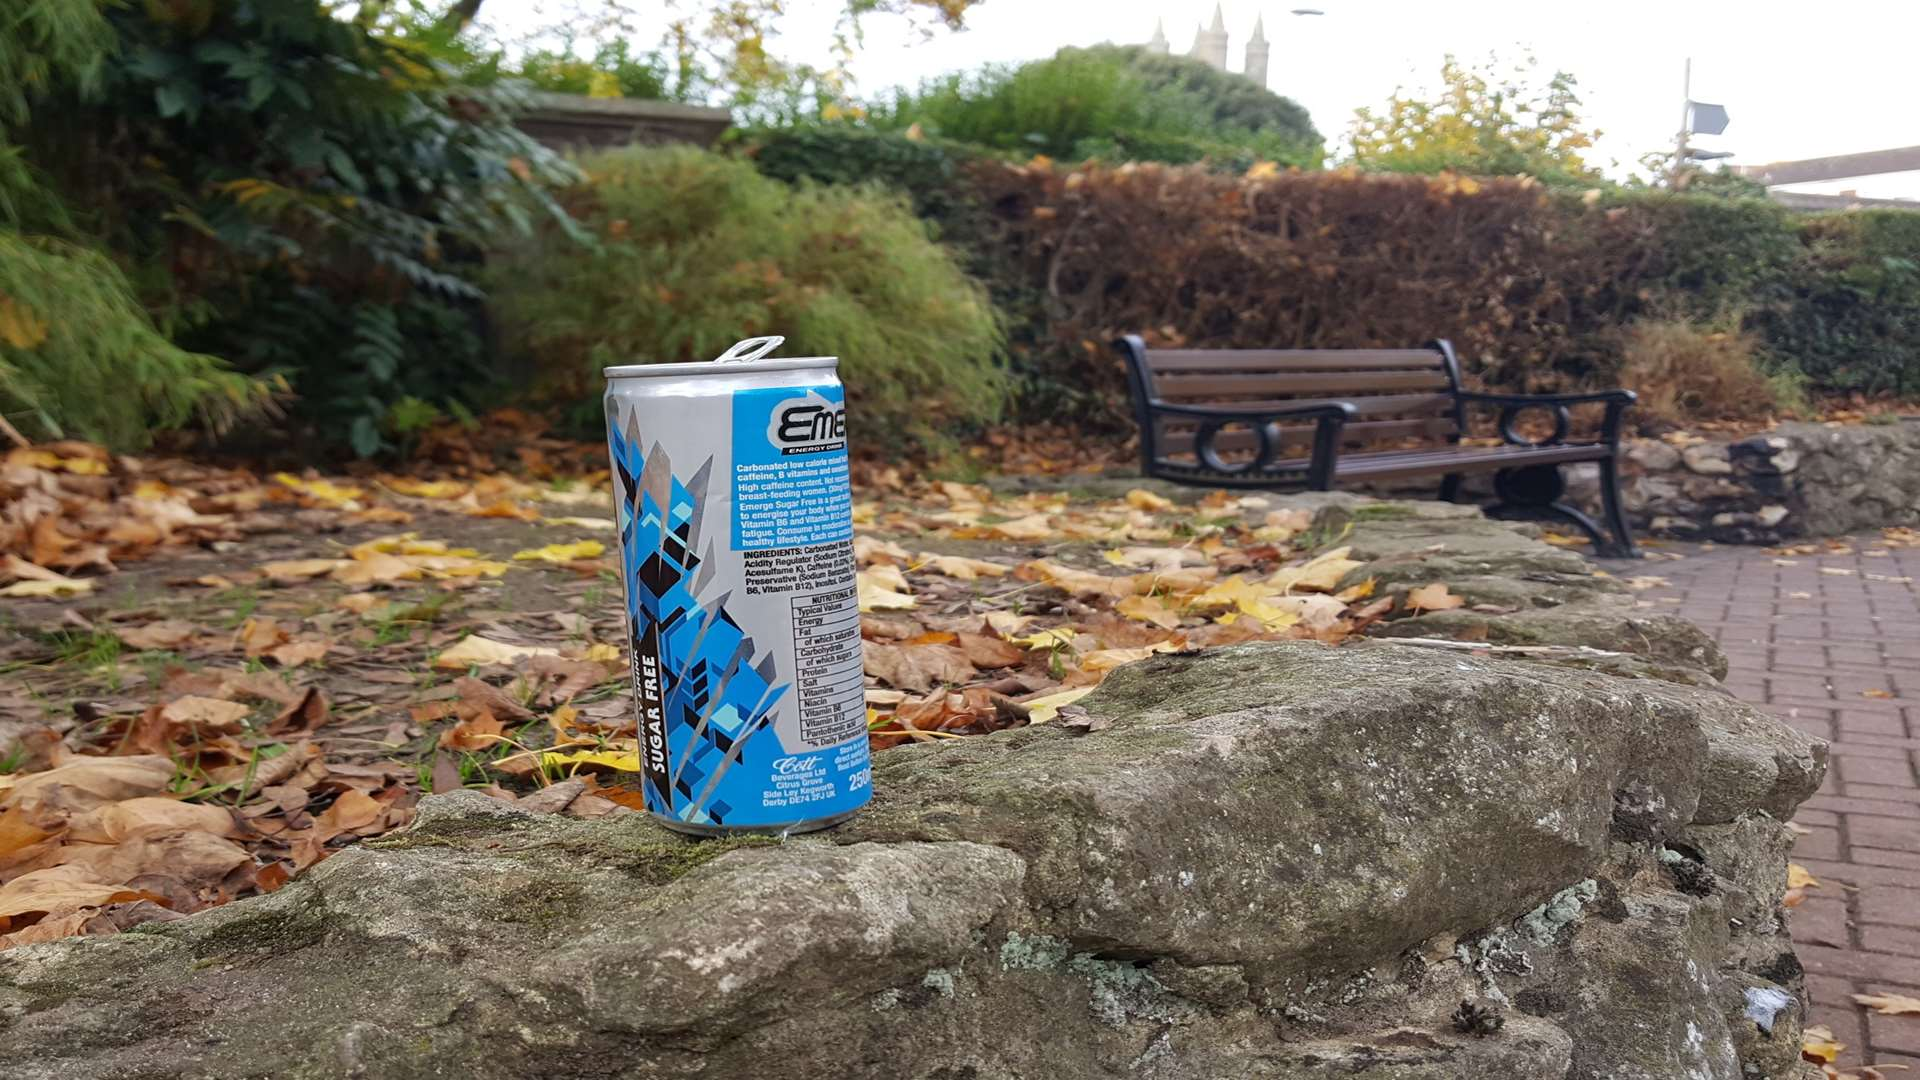 A drinks can left in the park